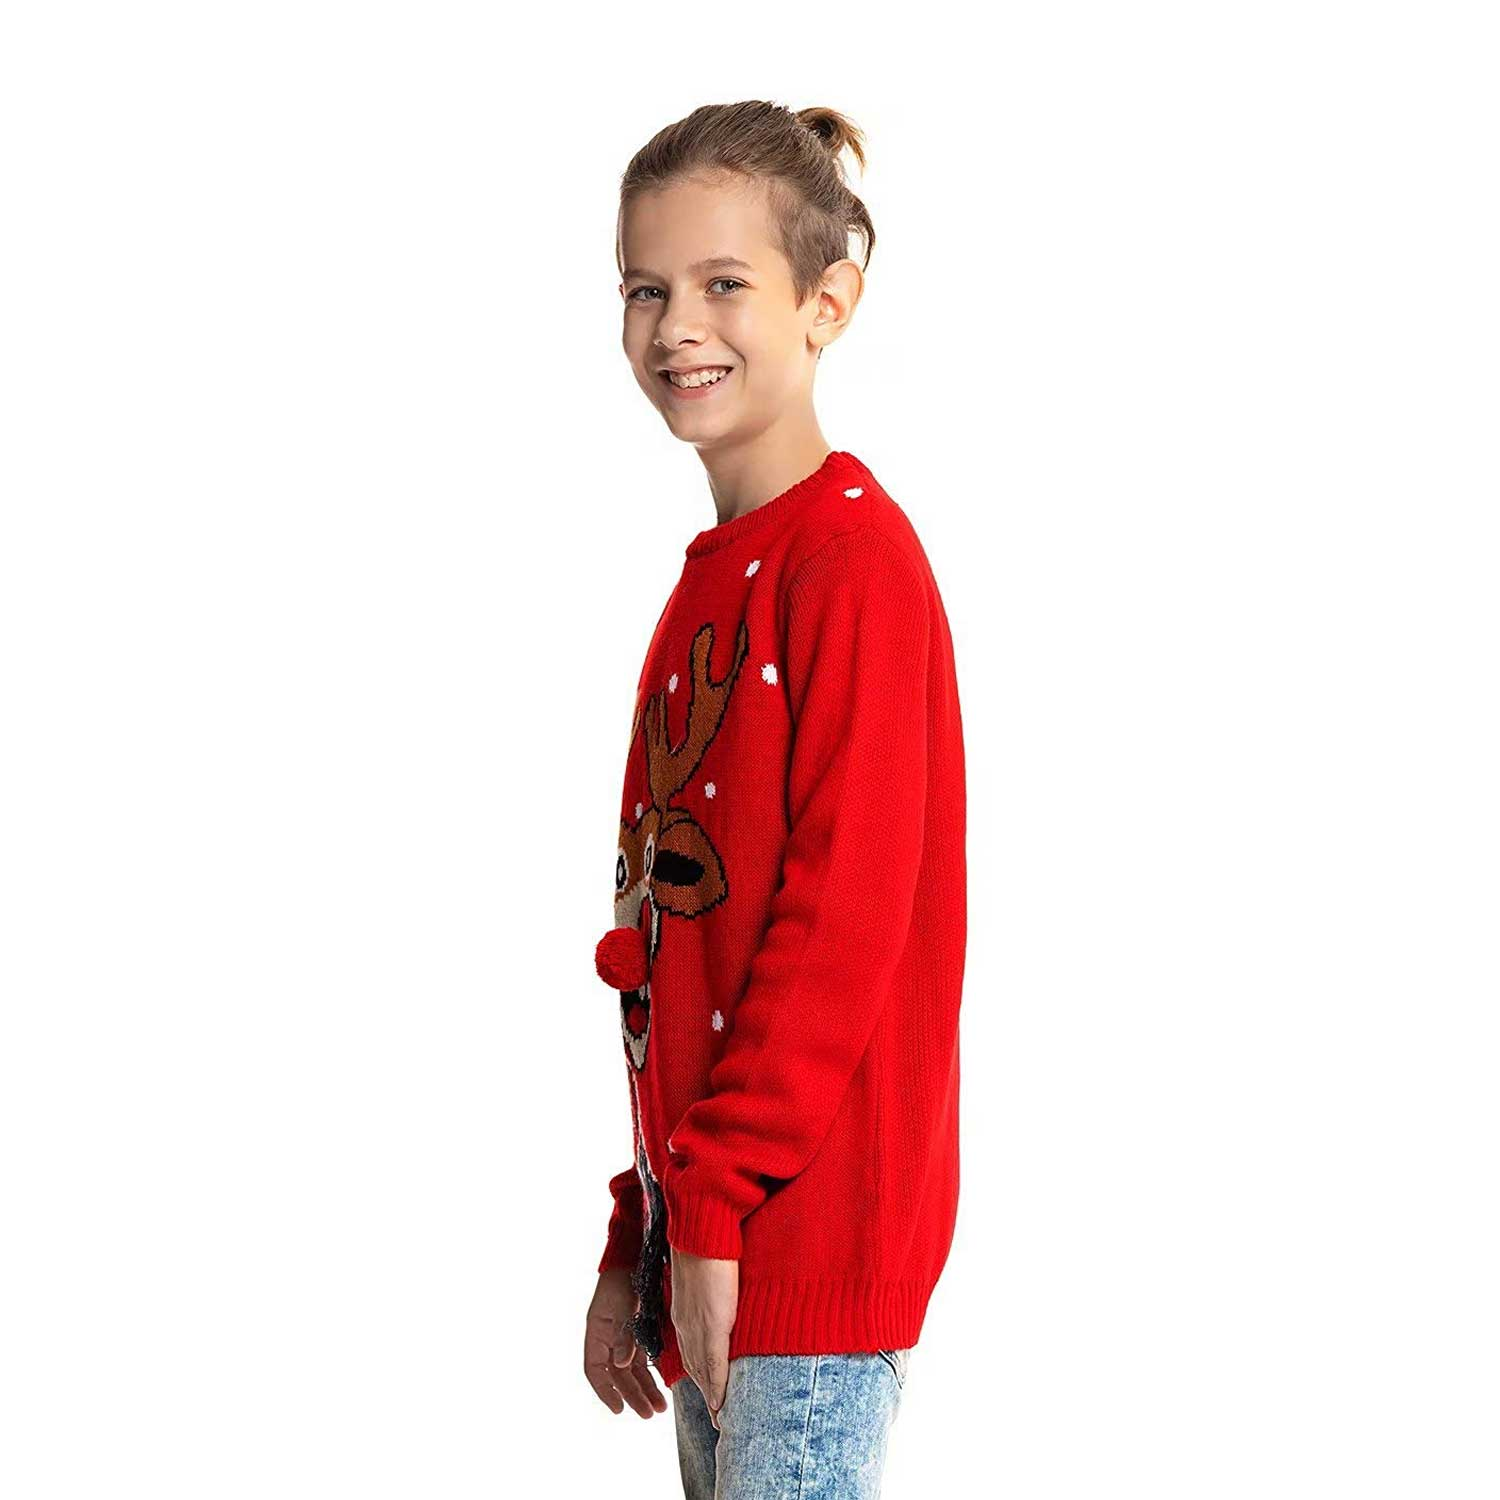 Red Nose Romp Kids Ugly Christmas Sweater   You Look Ugly Today